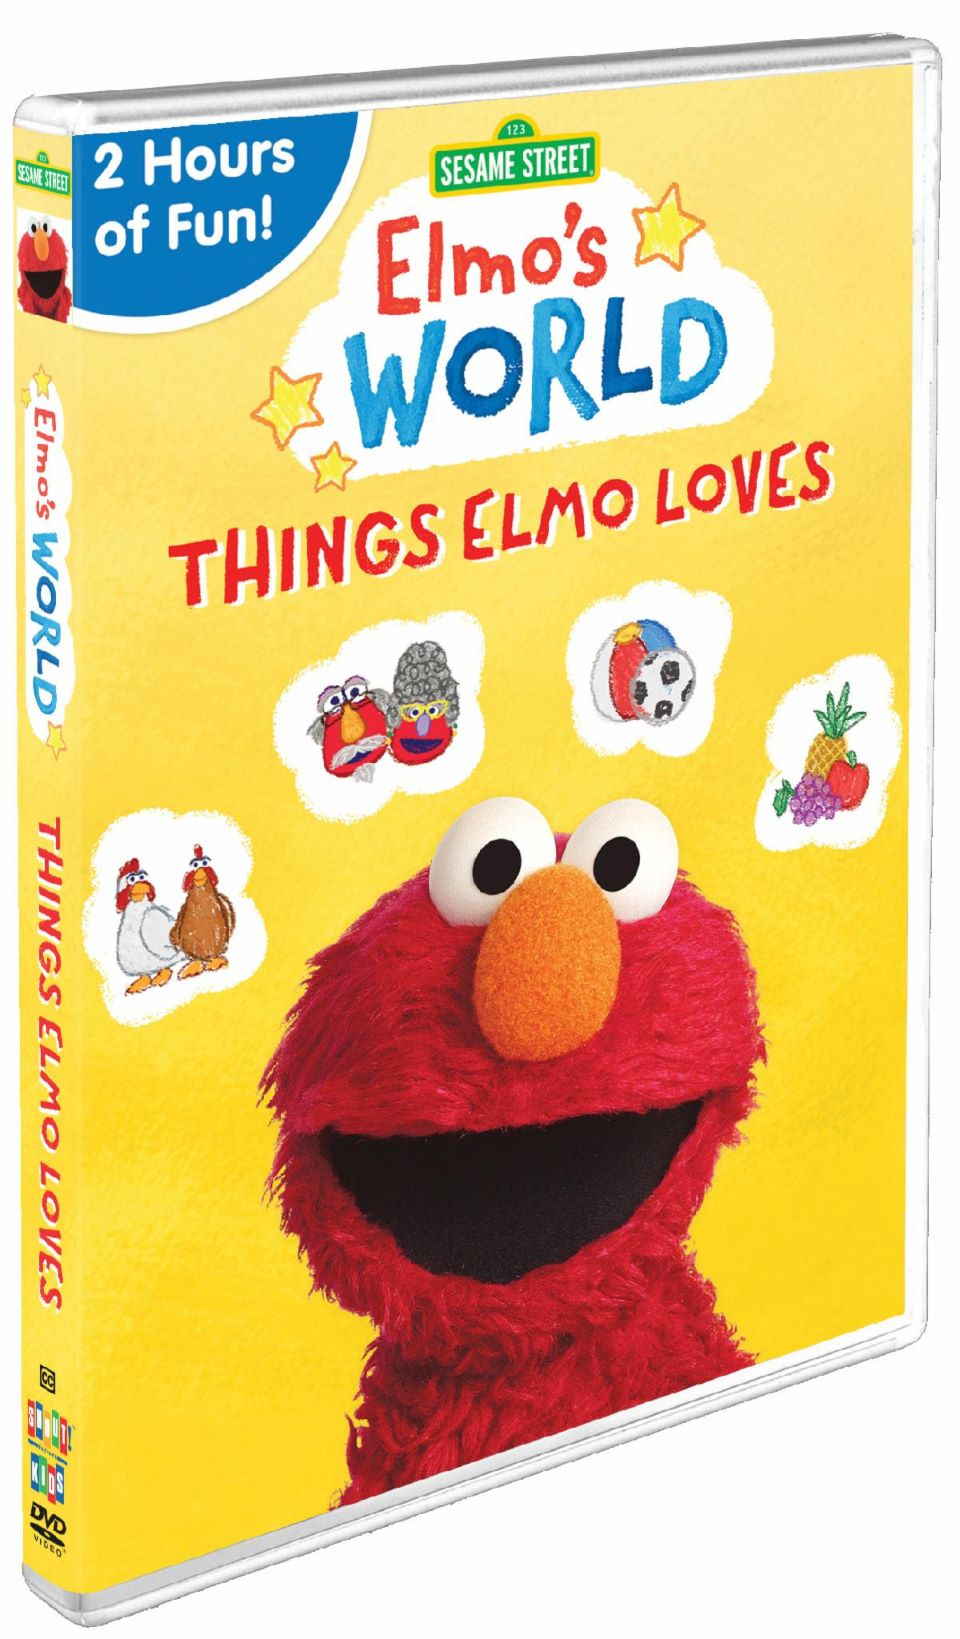 Sesame Street release Elmo's World: Things Elmo Loves DVD Giveaway